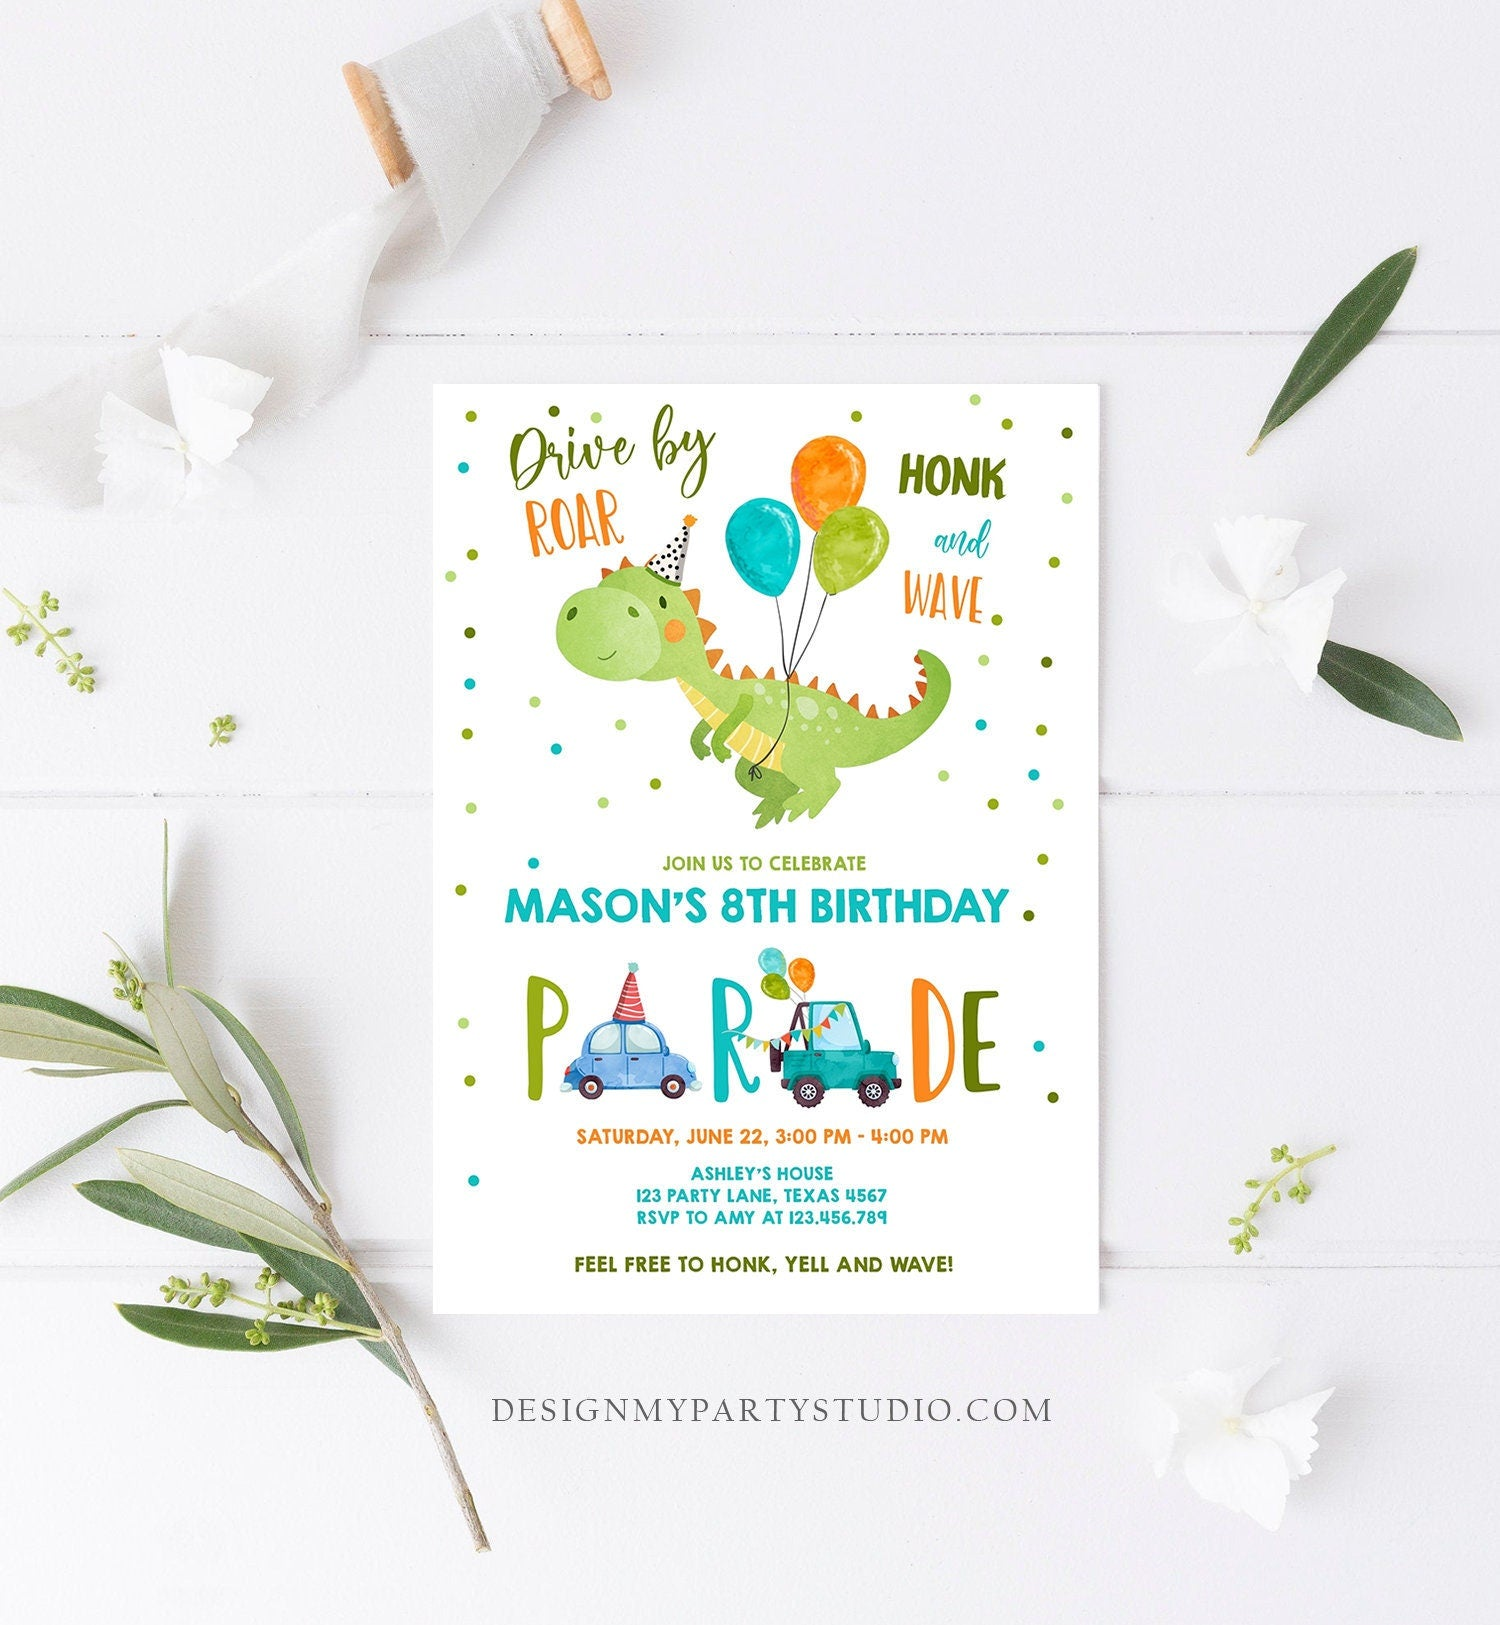 Editable Dinosaur Drive By Birthday Parade Invitation Virtual Party Invite Honk Wave Car Boy Dino Quarantine Download Digital Corjl 0340